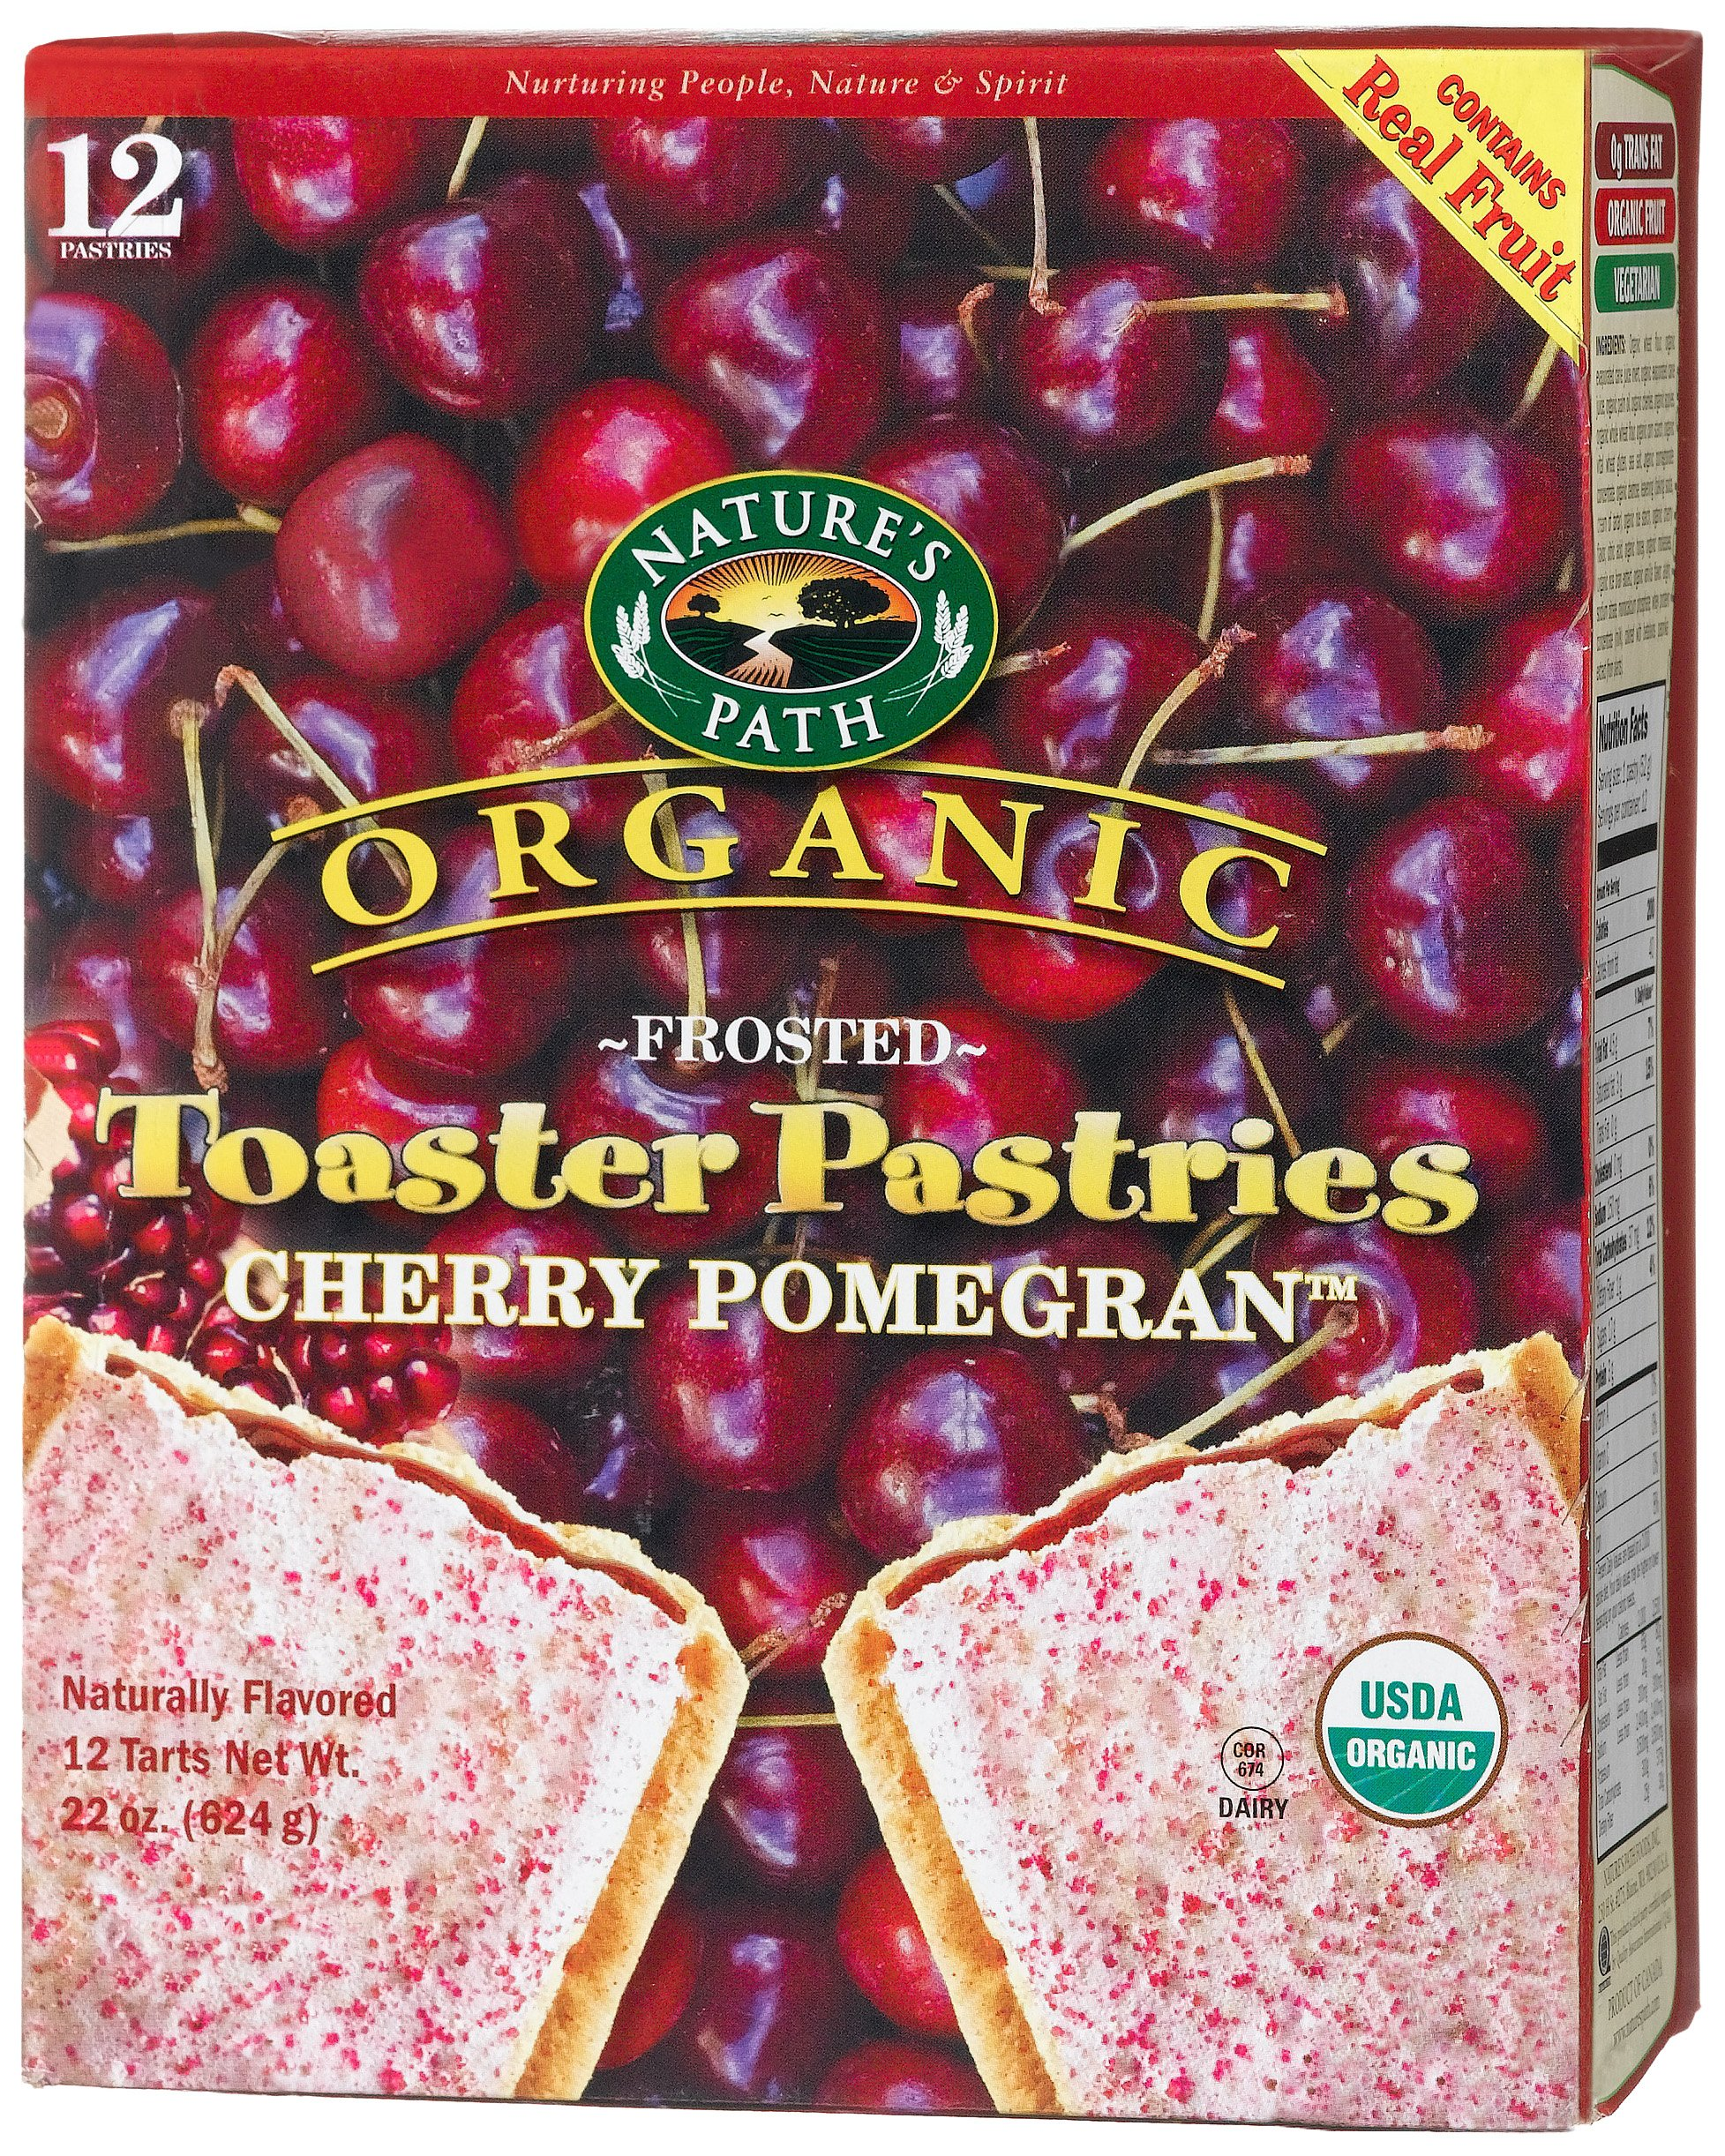 Nature's Path Organic Toaster Pastries, Frosted Cherry Pomegranate, 12-Count Boxes (Pack of 6)